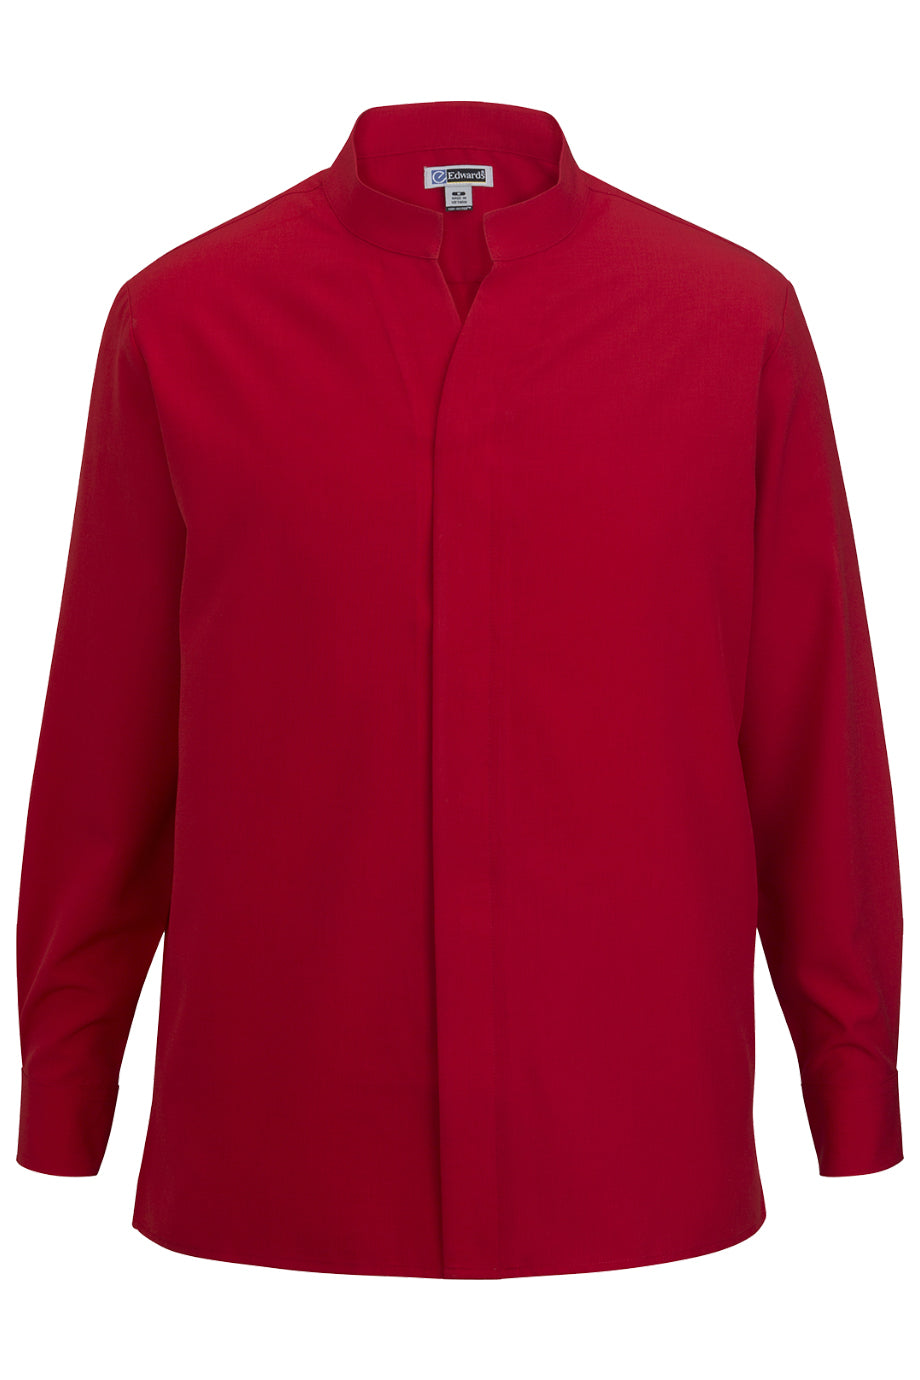 Red Edwards Mens Stand-Up Collar Shirt